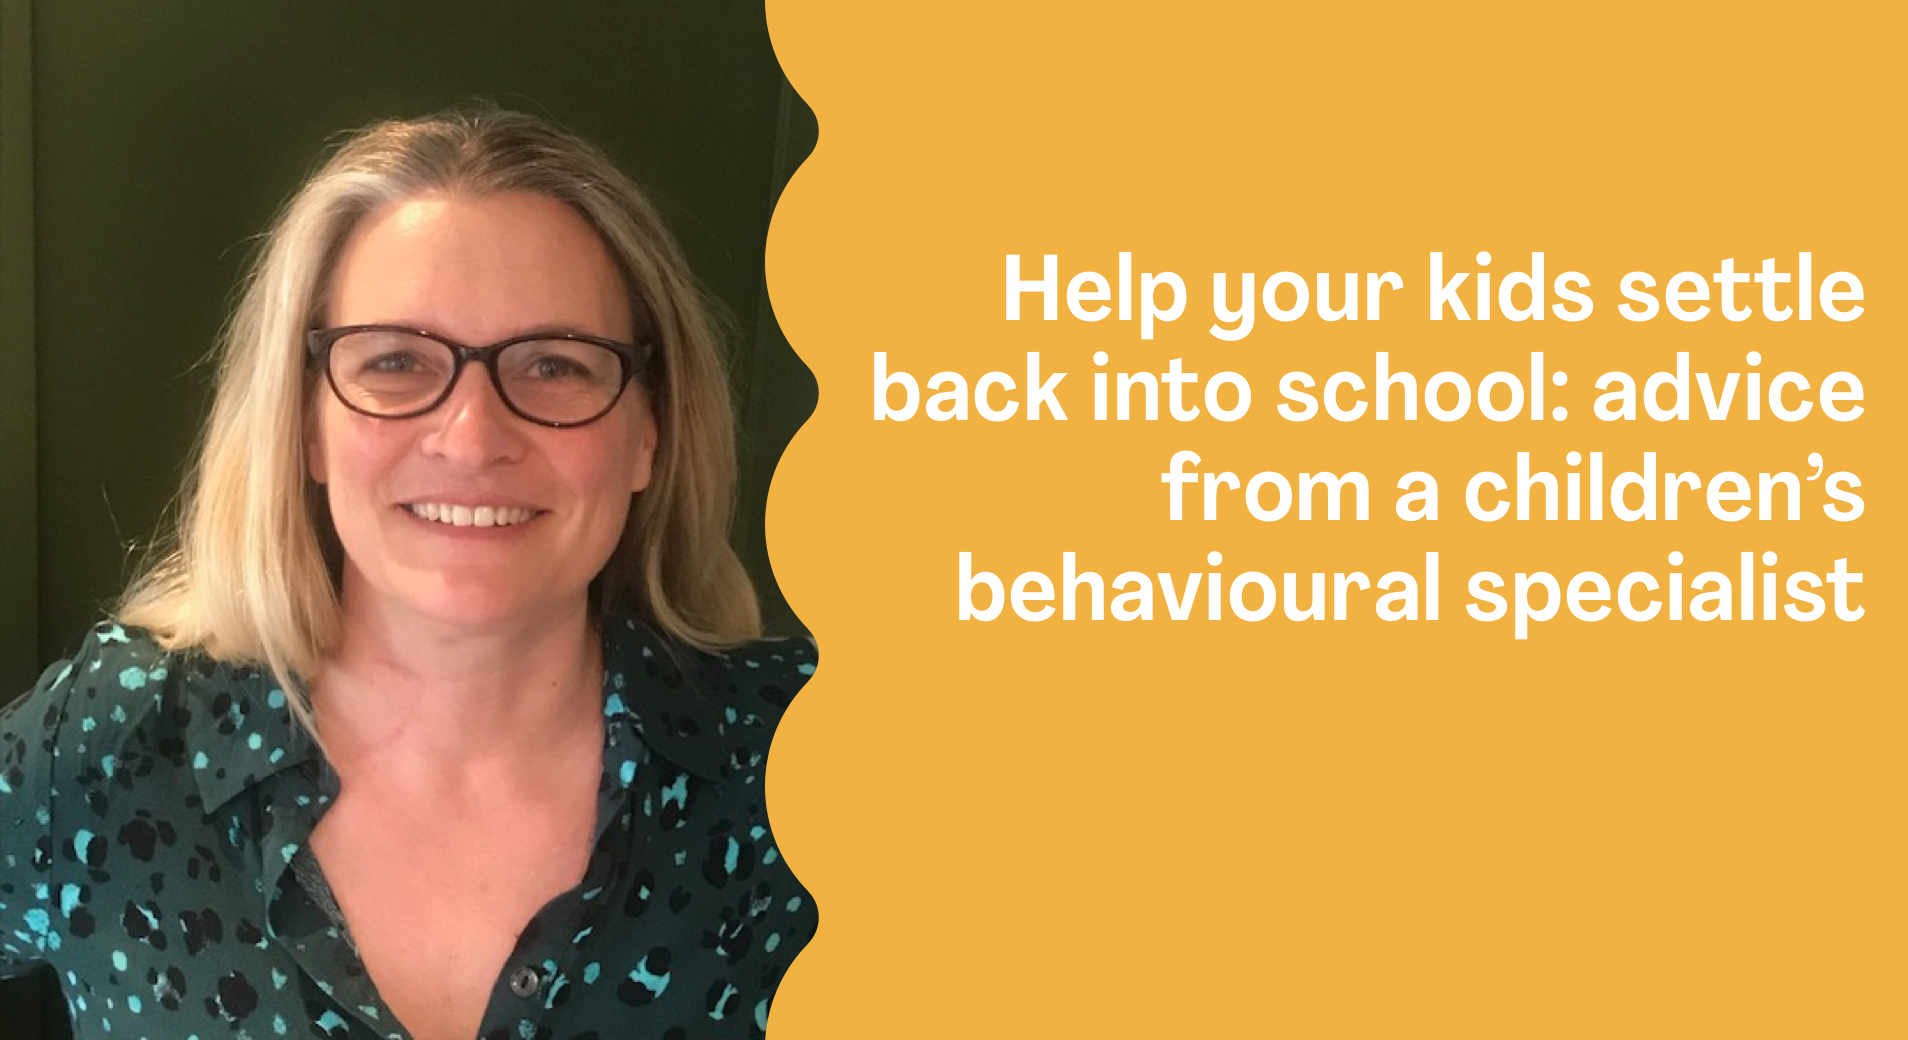 4 top tips to help your kids settle back into school